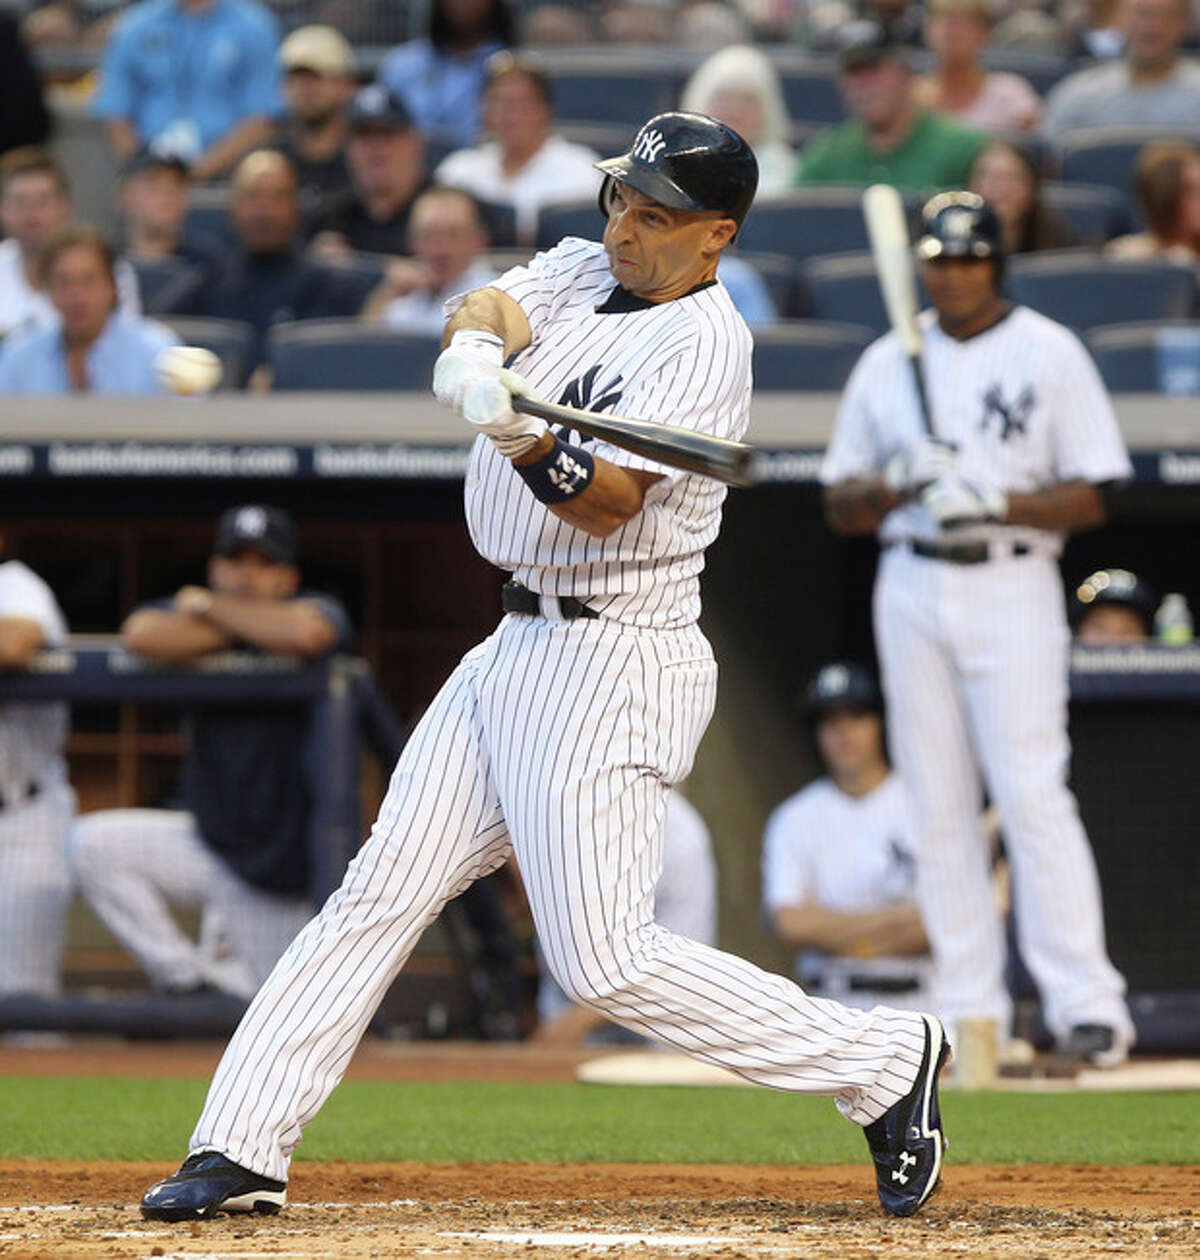 New York Yankees' Raul Ibanez hits a two-run home run during the first inning of the baseball game against the Boston Red Sox at Yankee Stadium in New York, Friday, July 27, 2012. (AP Photo/Seth Wenig)